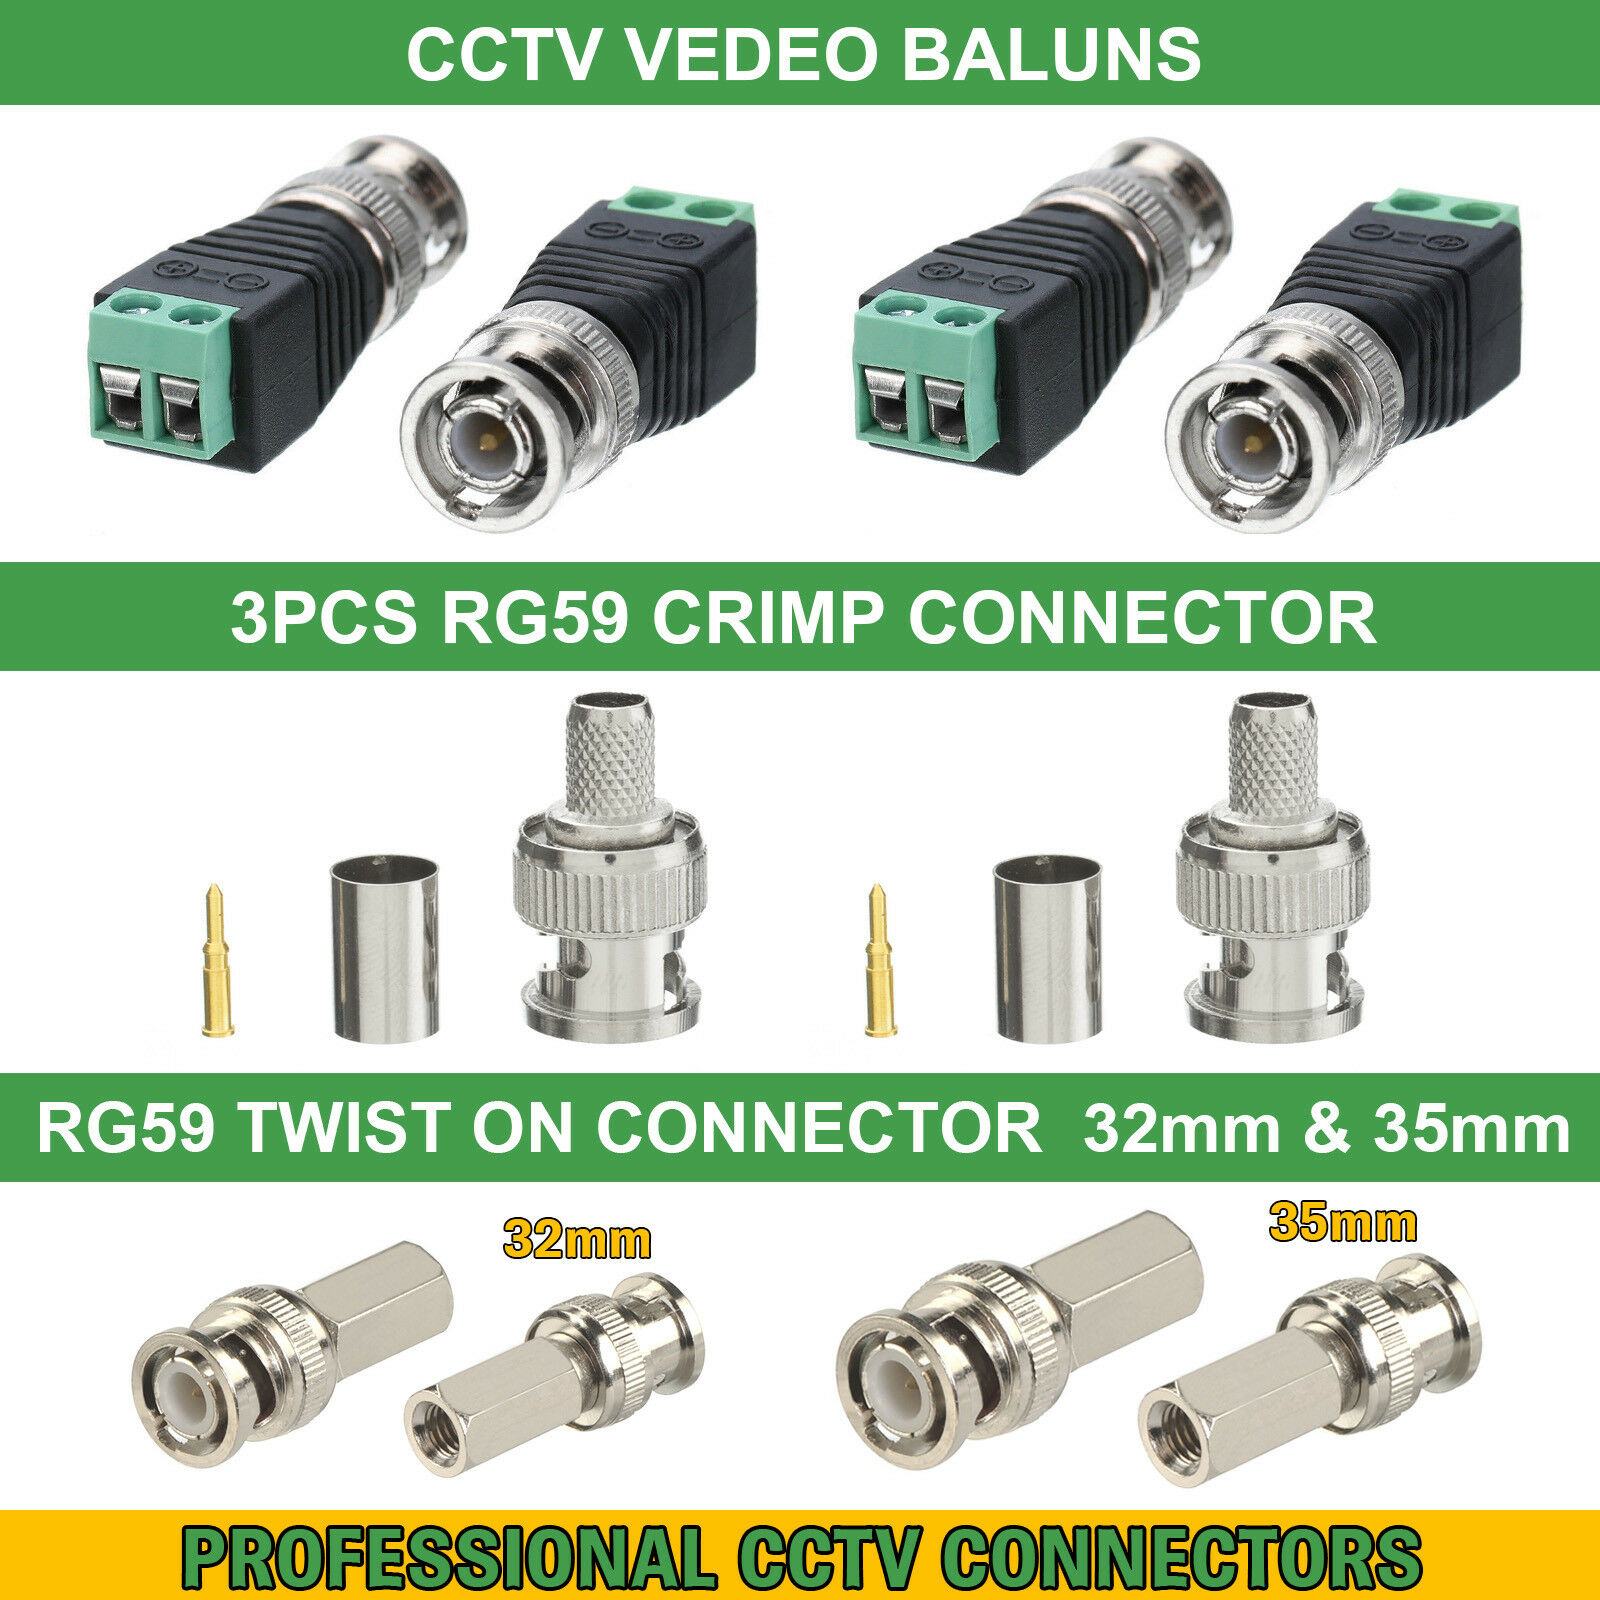 hight resolution of details about cctv bnc coax crimp video rca phono rg59 balun utp cat5 connector joiner coupler